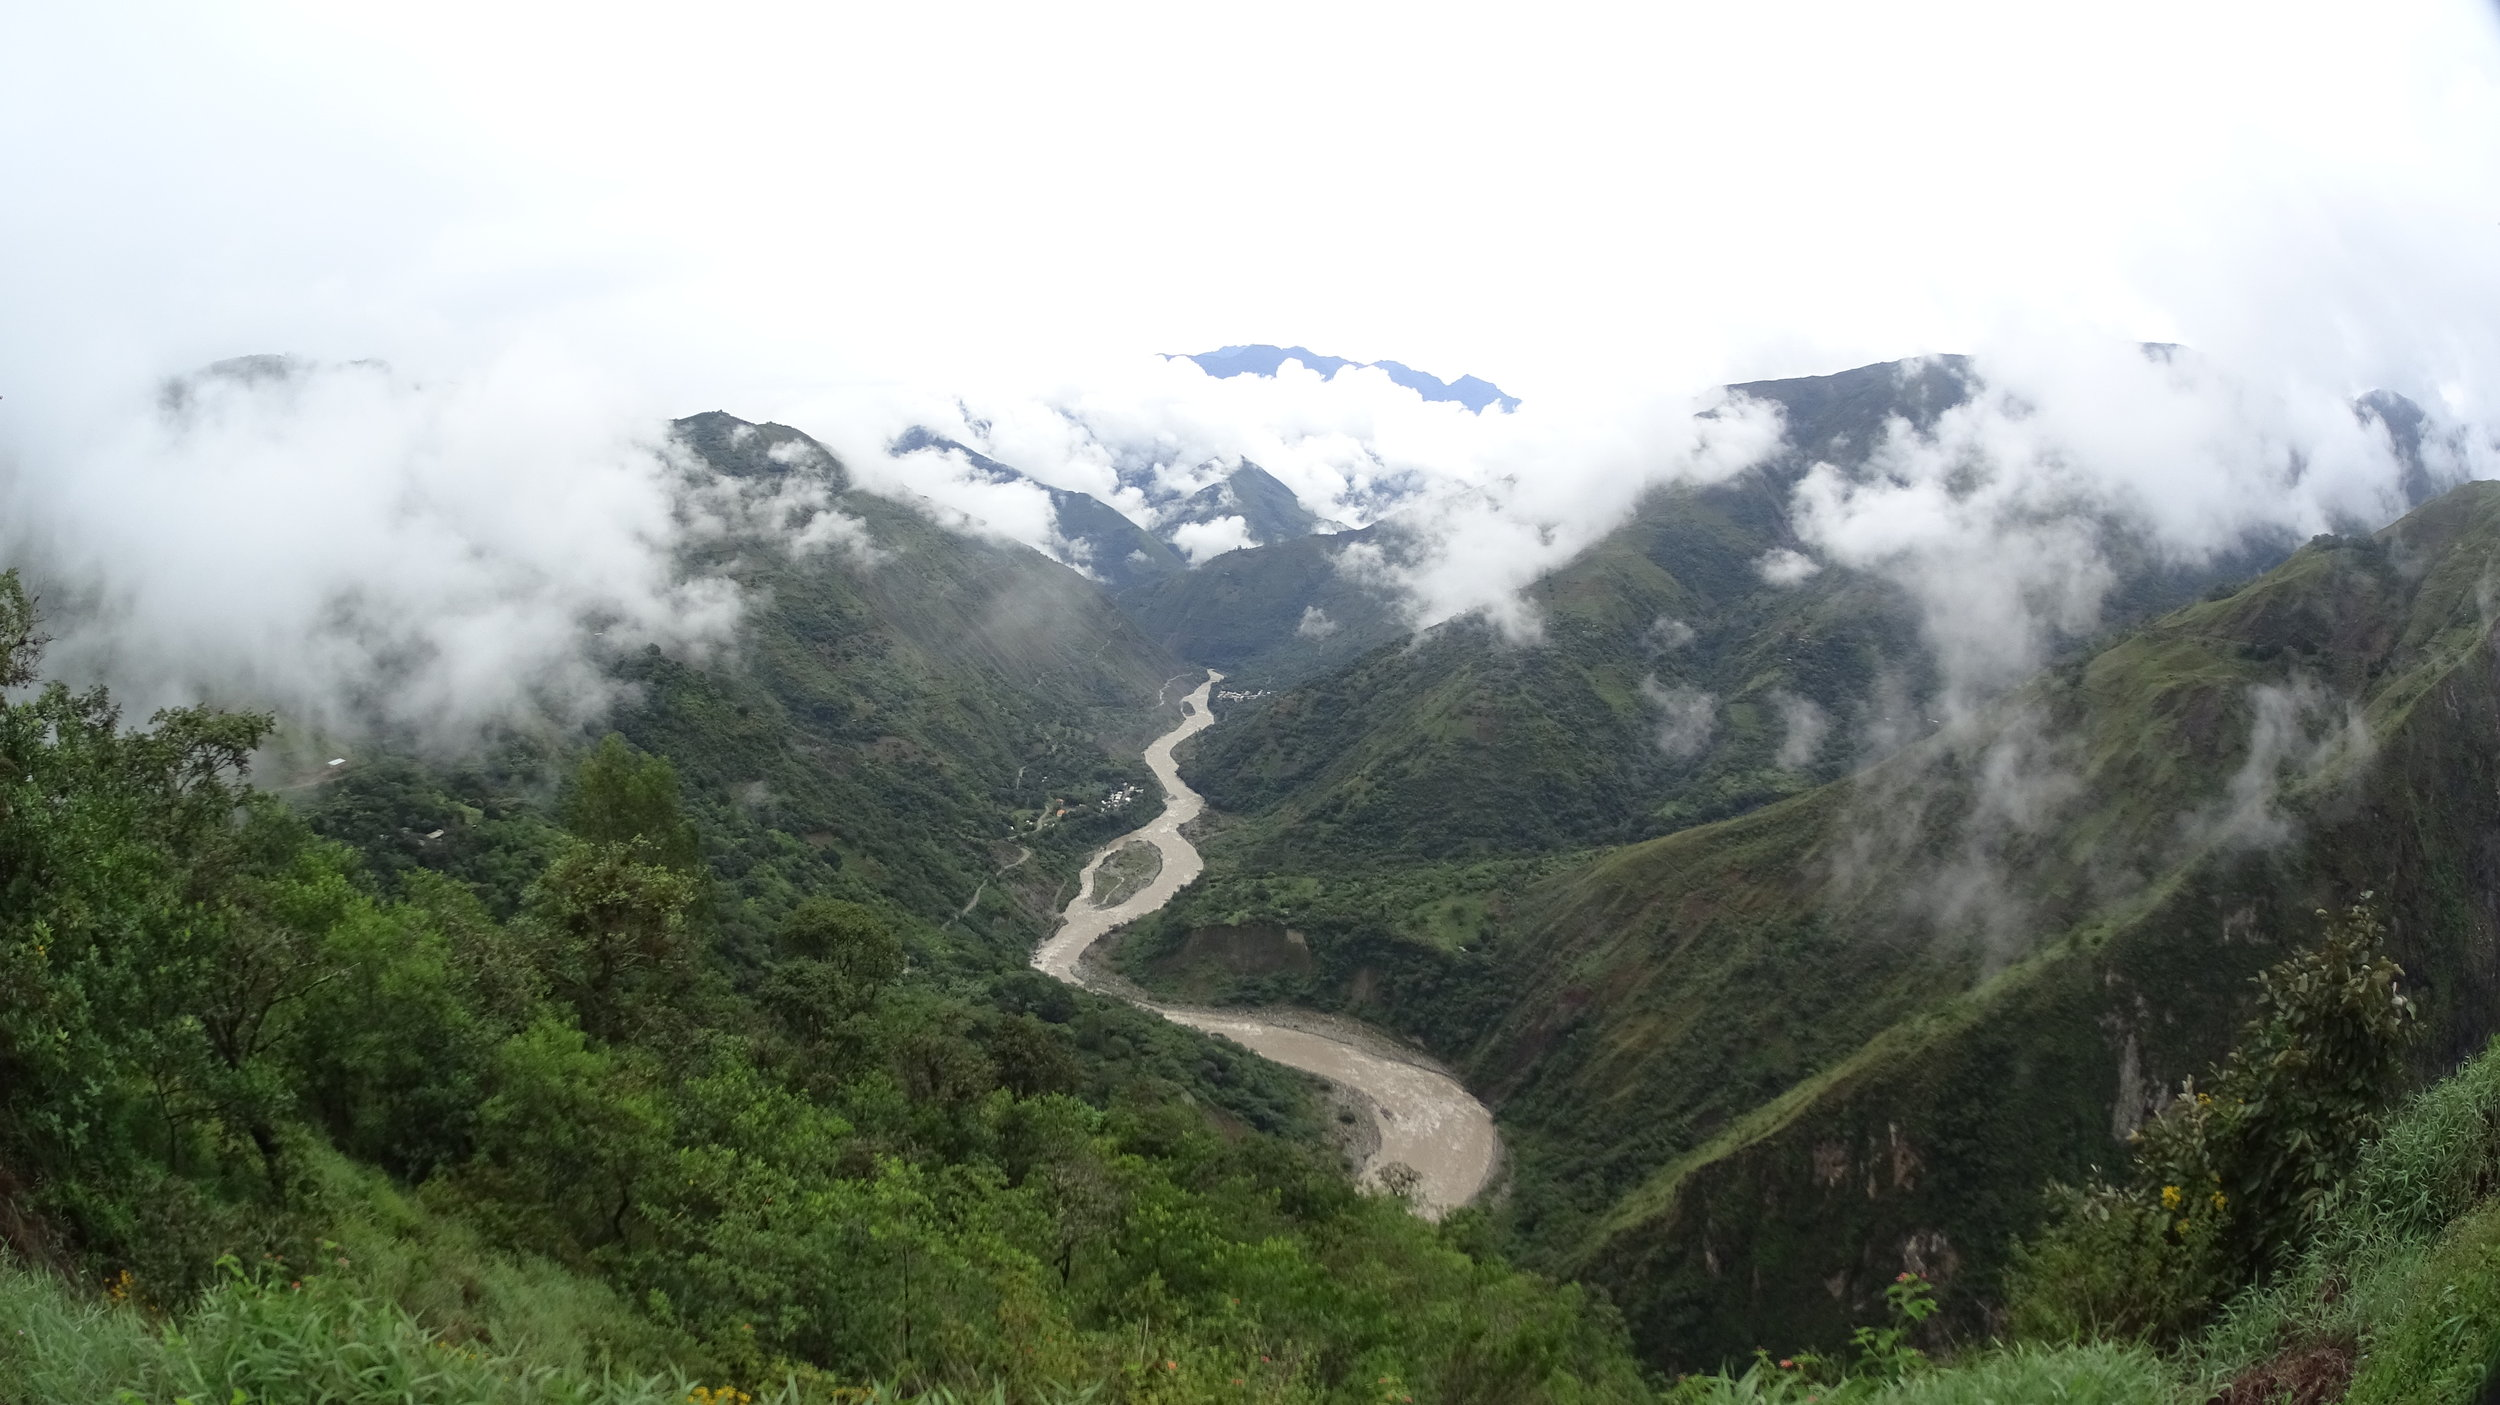 The Great Urubamba River. You can feel its strength when you hear the rapids.